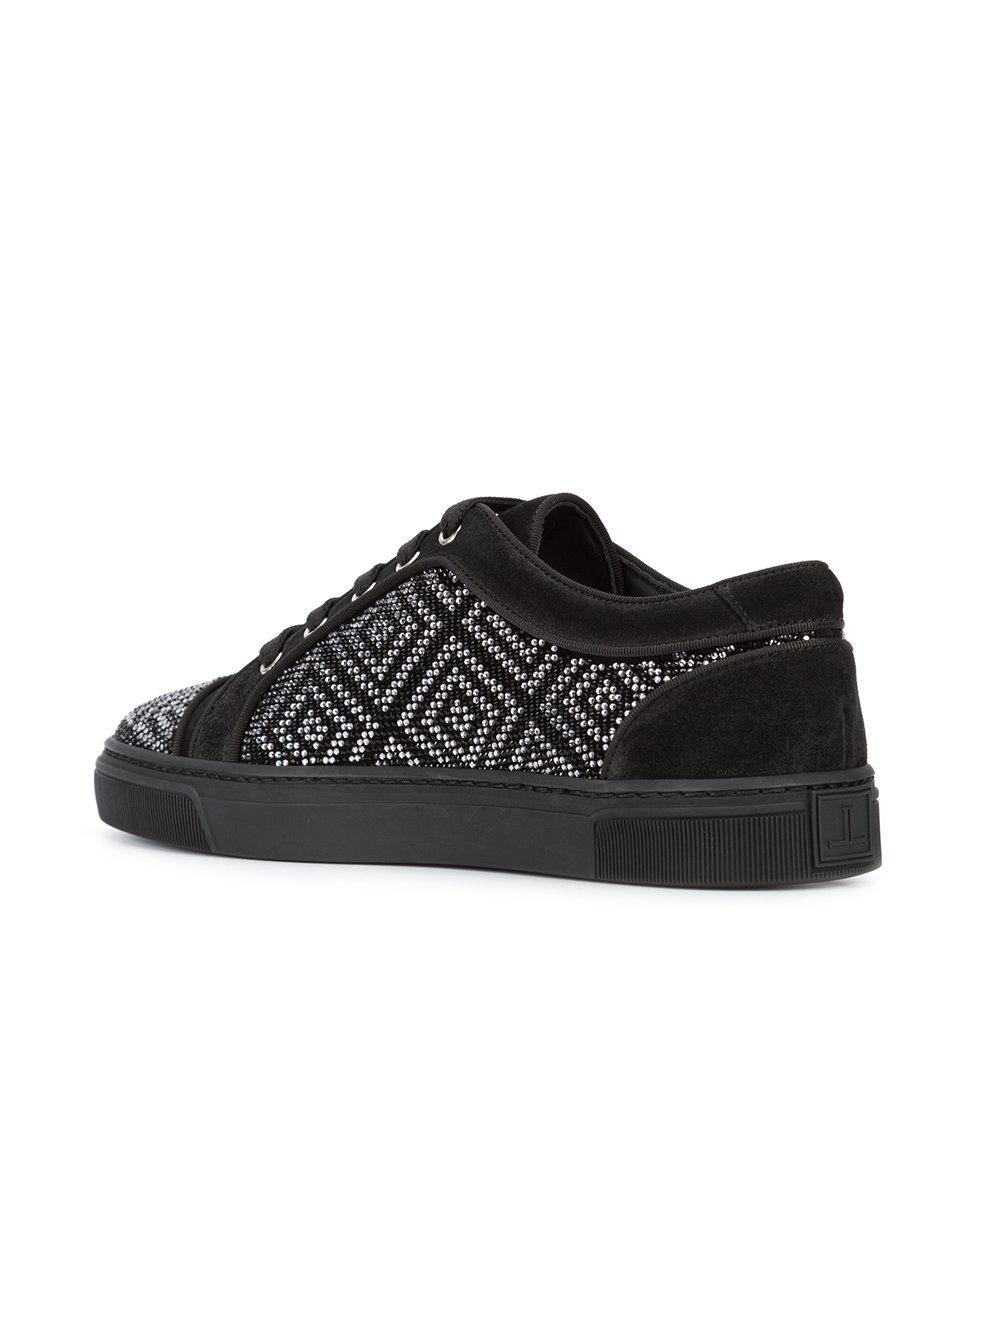 Louis Leeman Leather Contrast Lace Up Trainers in Black for Men